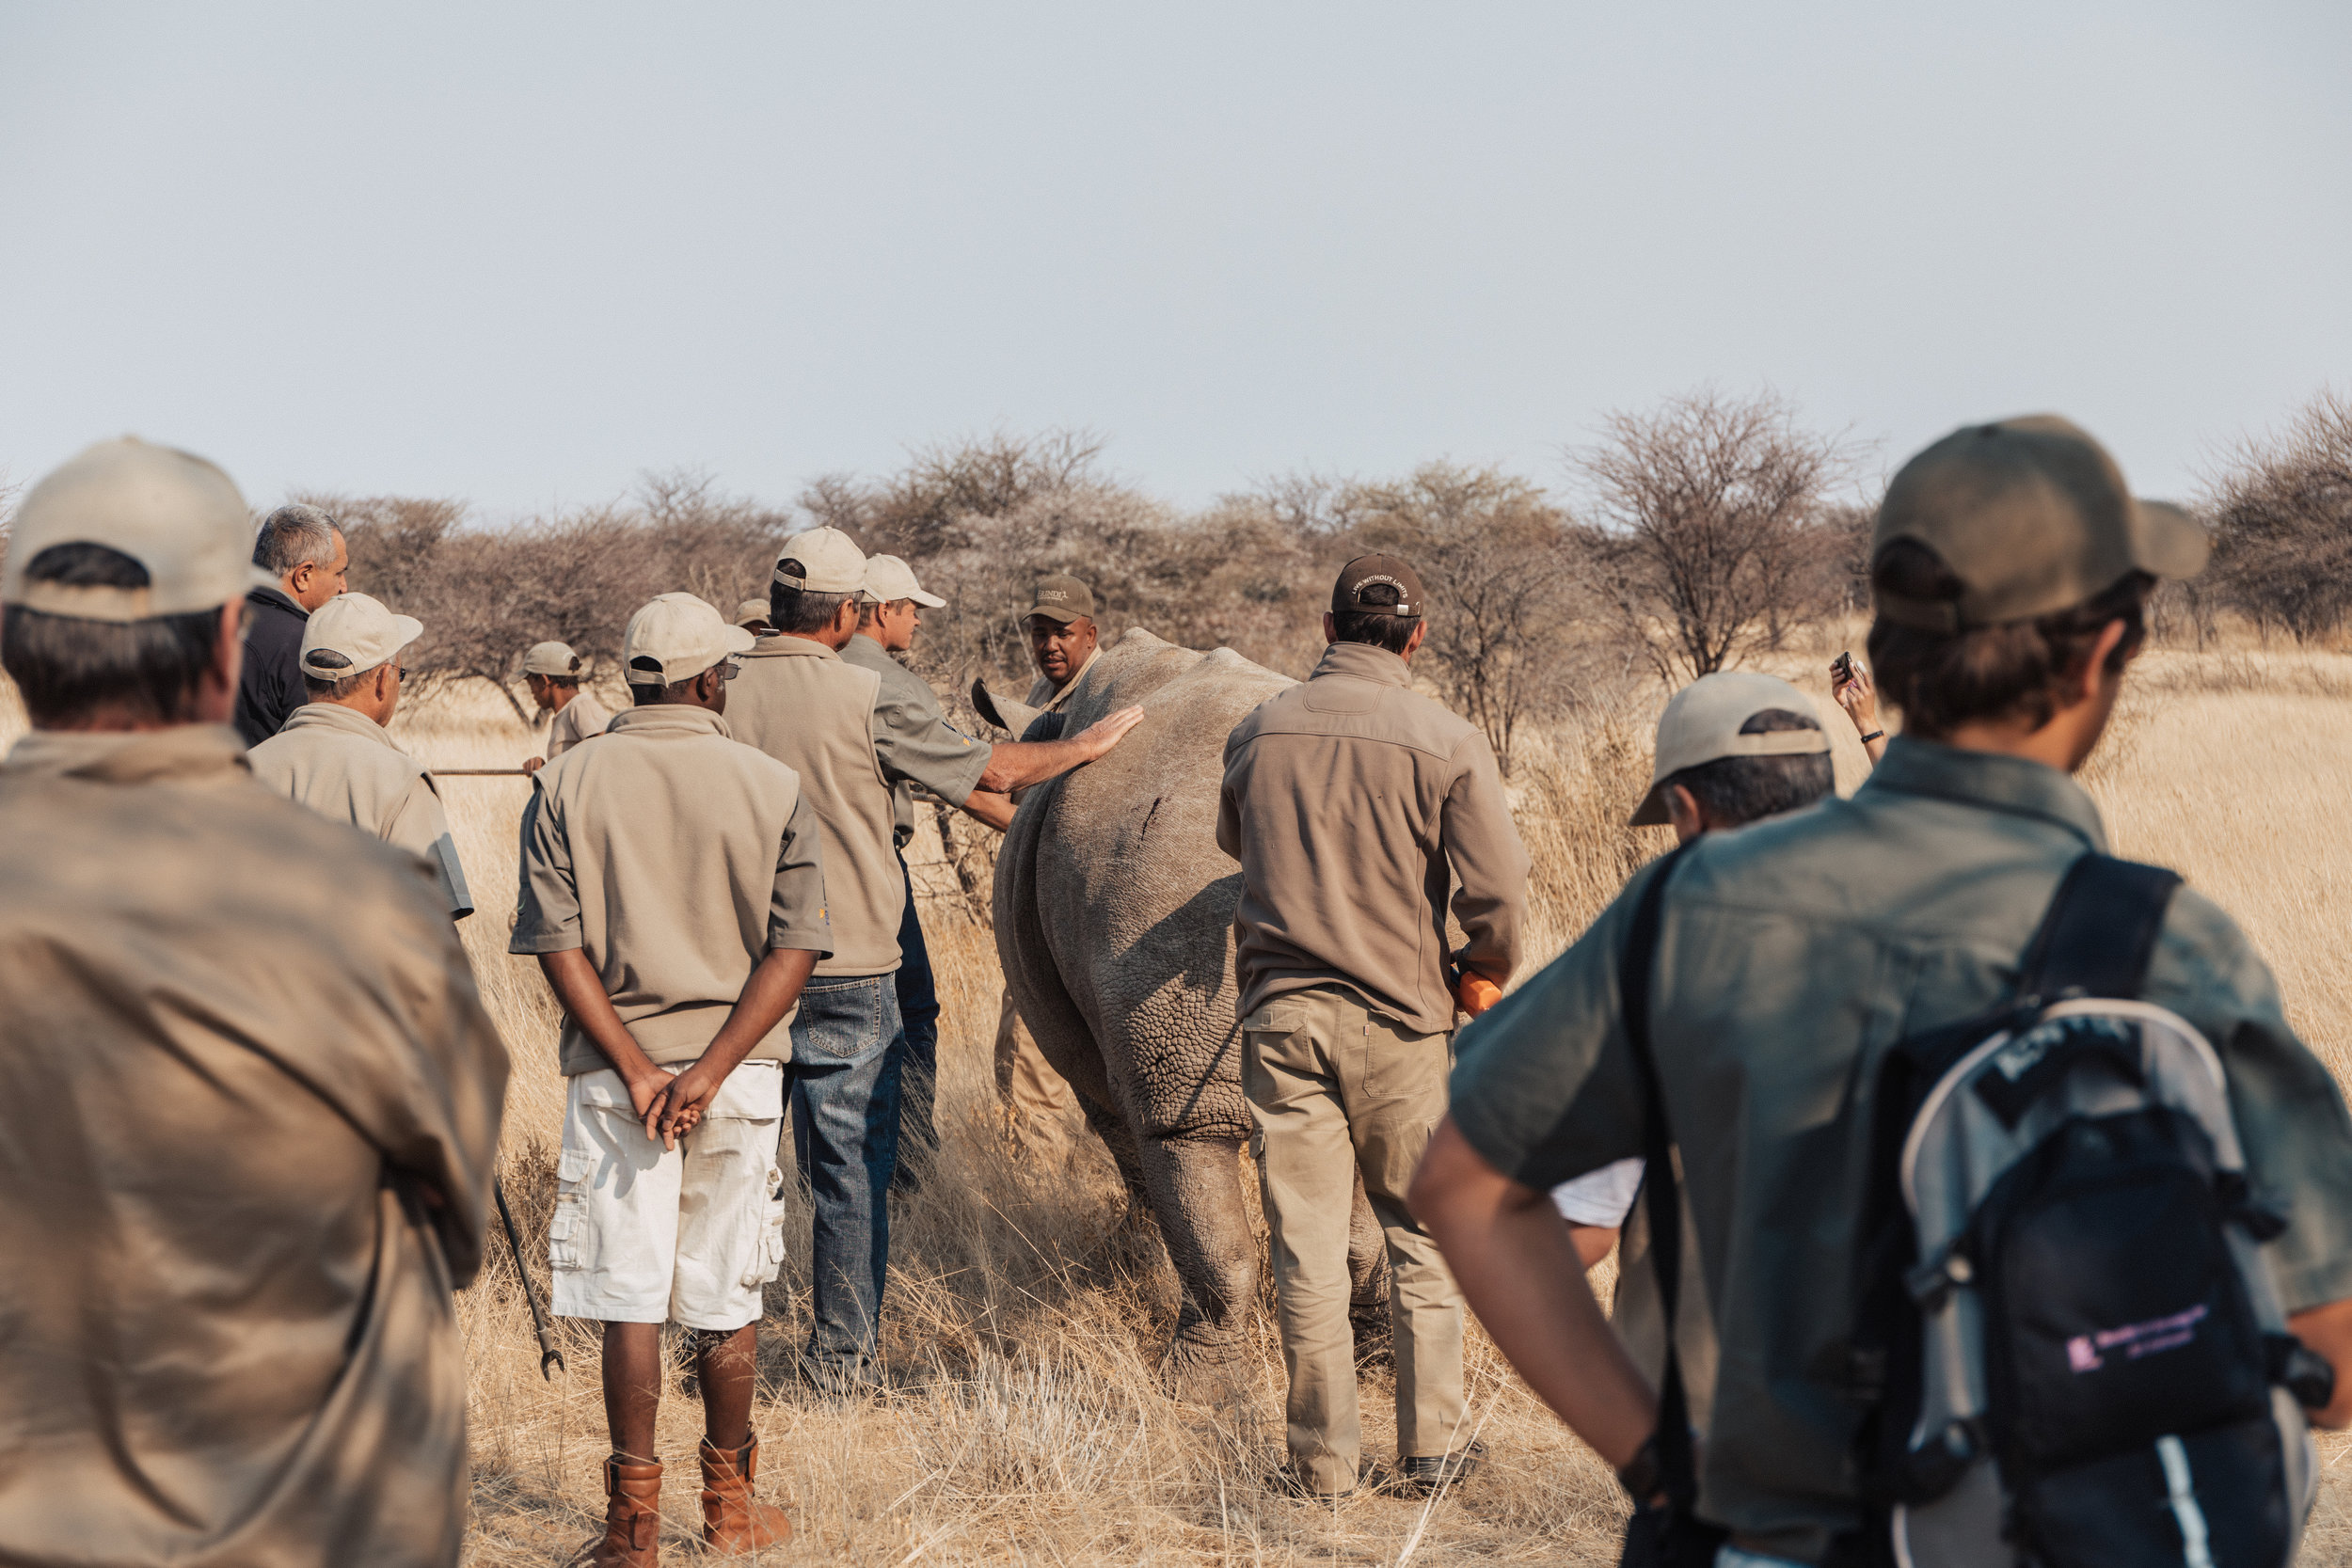 The vets and reserve workers help the white rhino to its feet